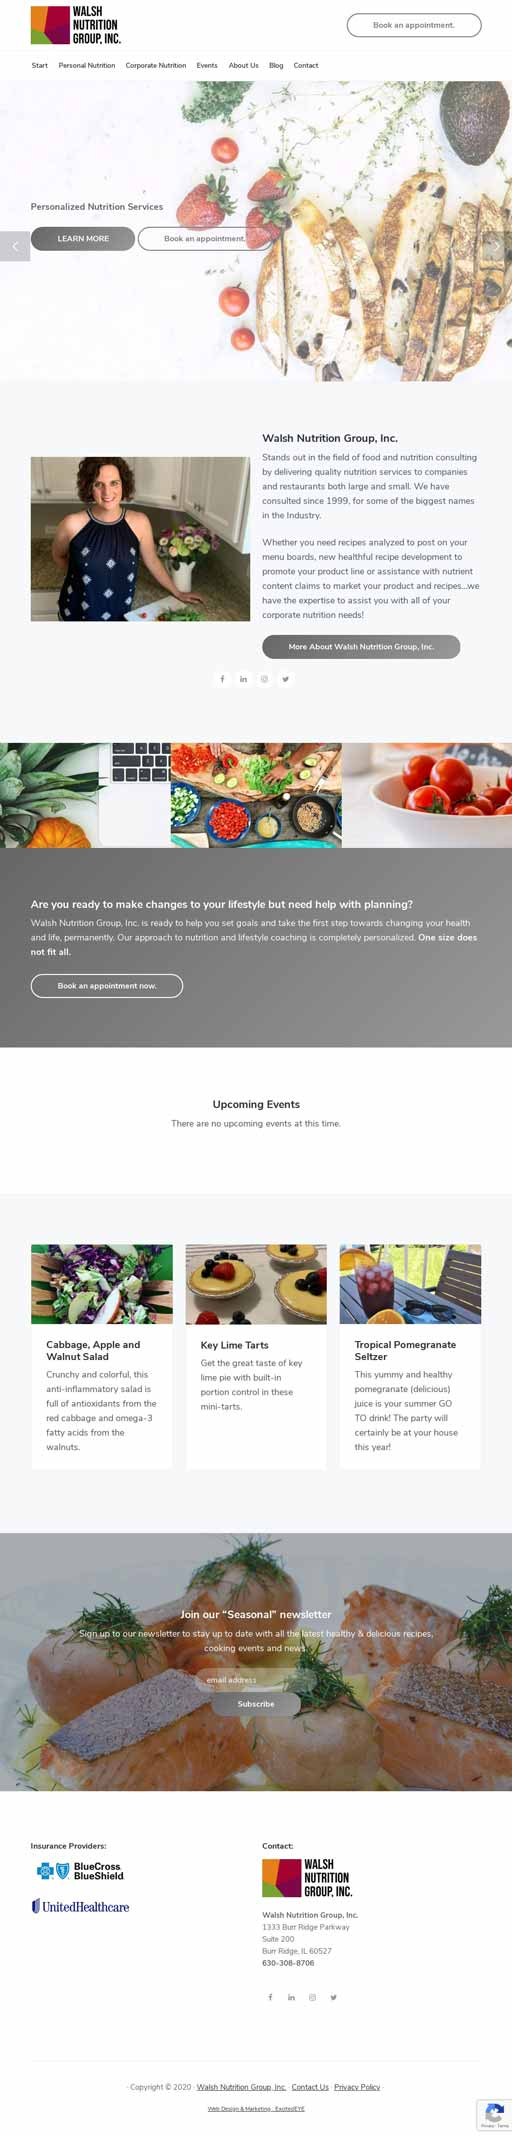 Full Front WordPress Web Design View